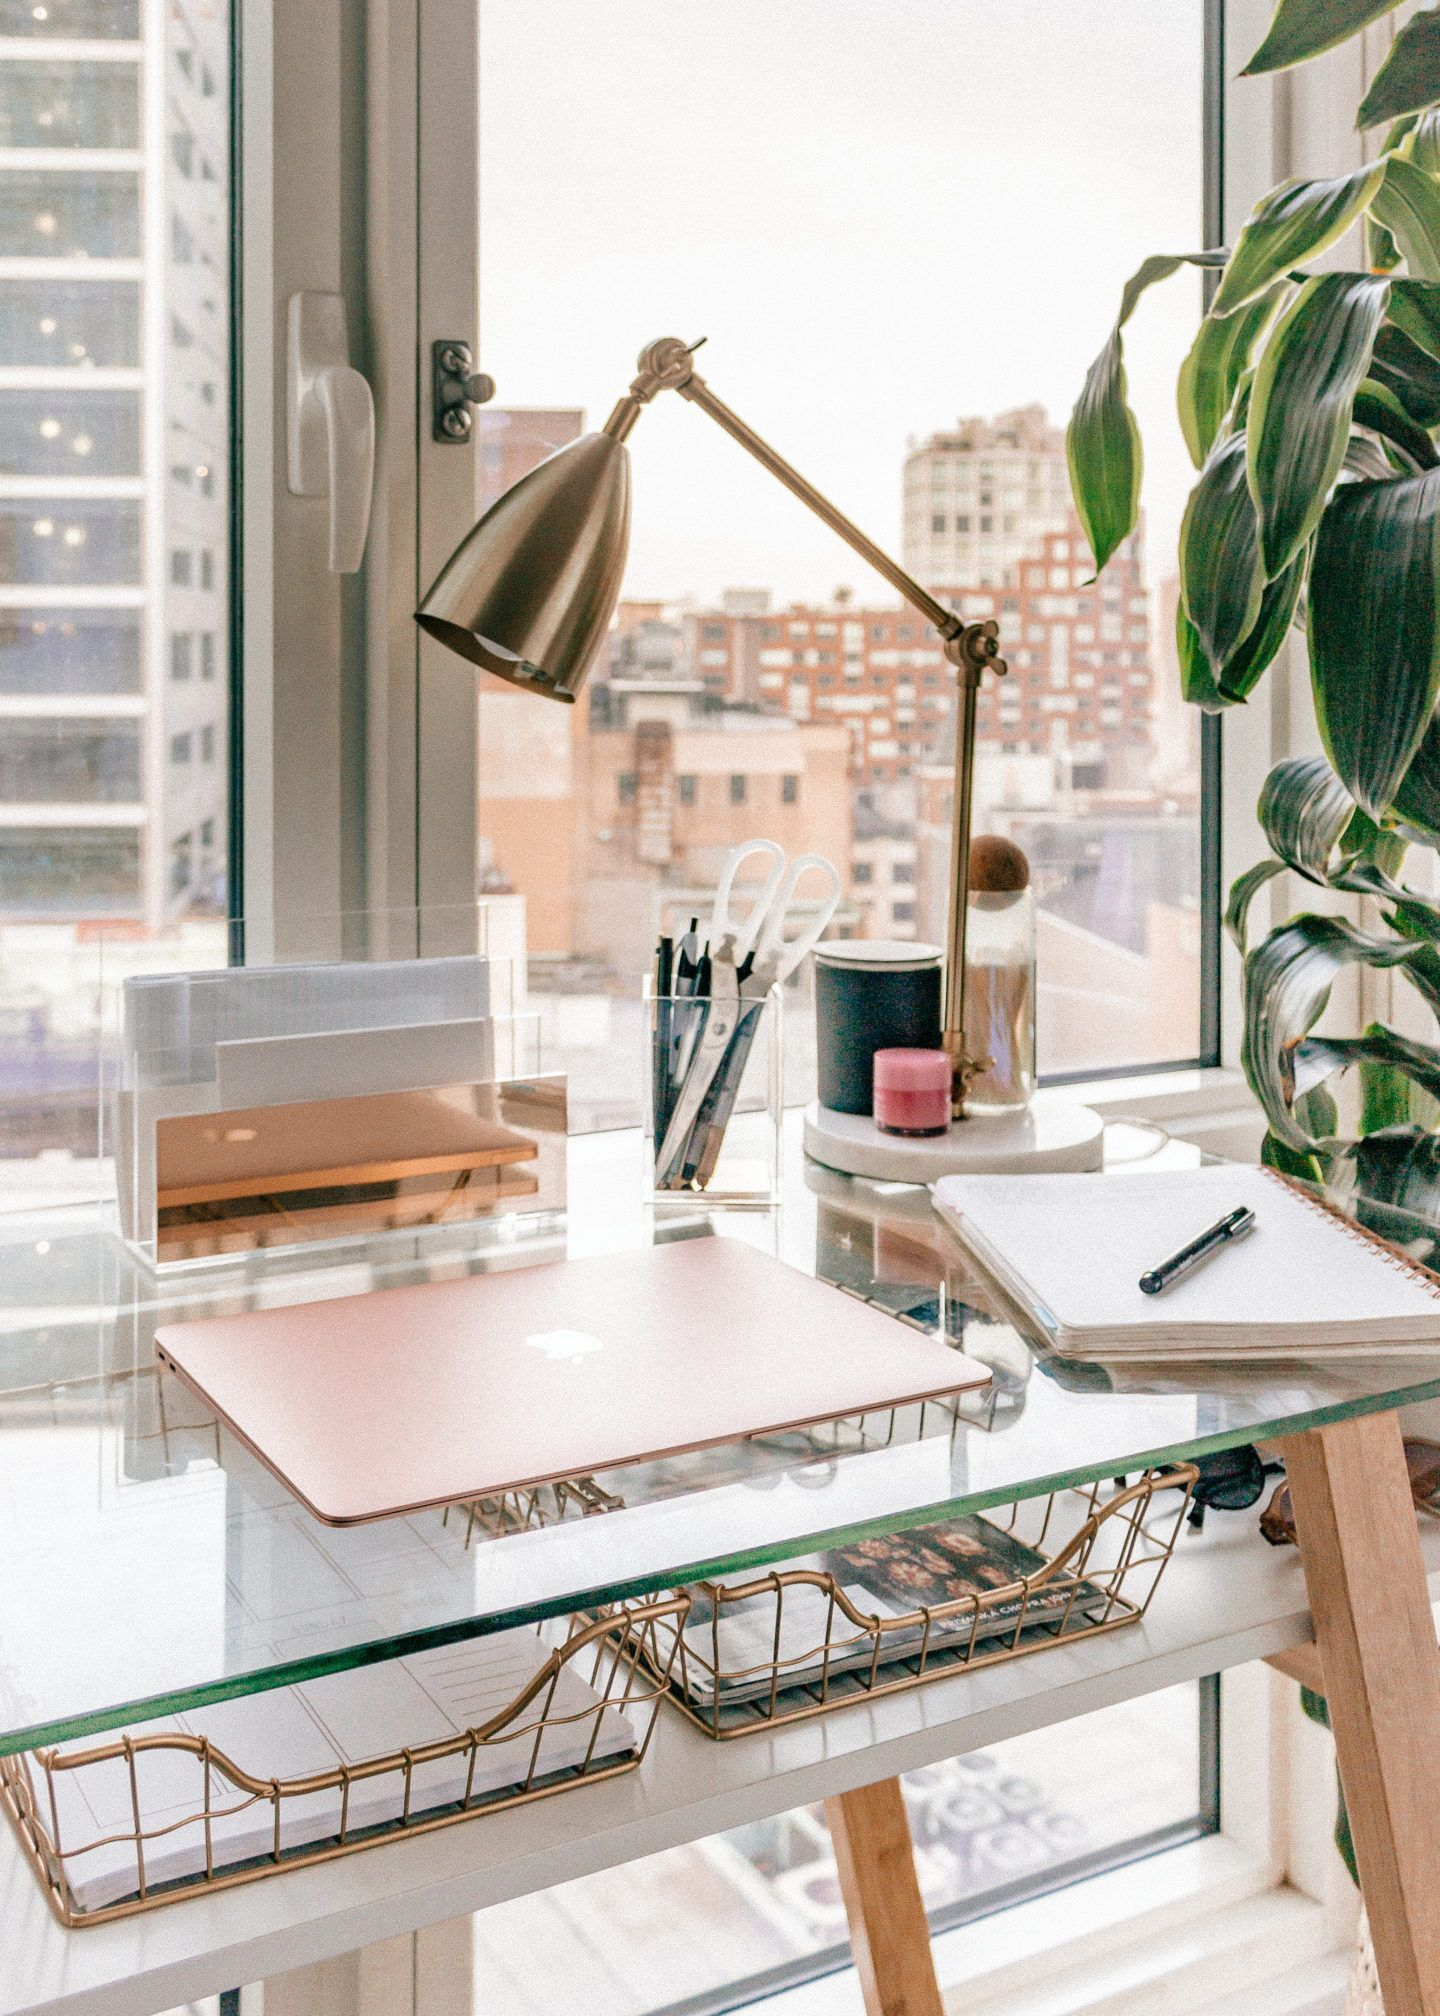 My Desk // Organization + Decor - Melissa Frusco